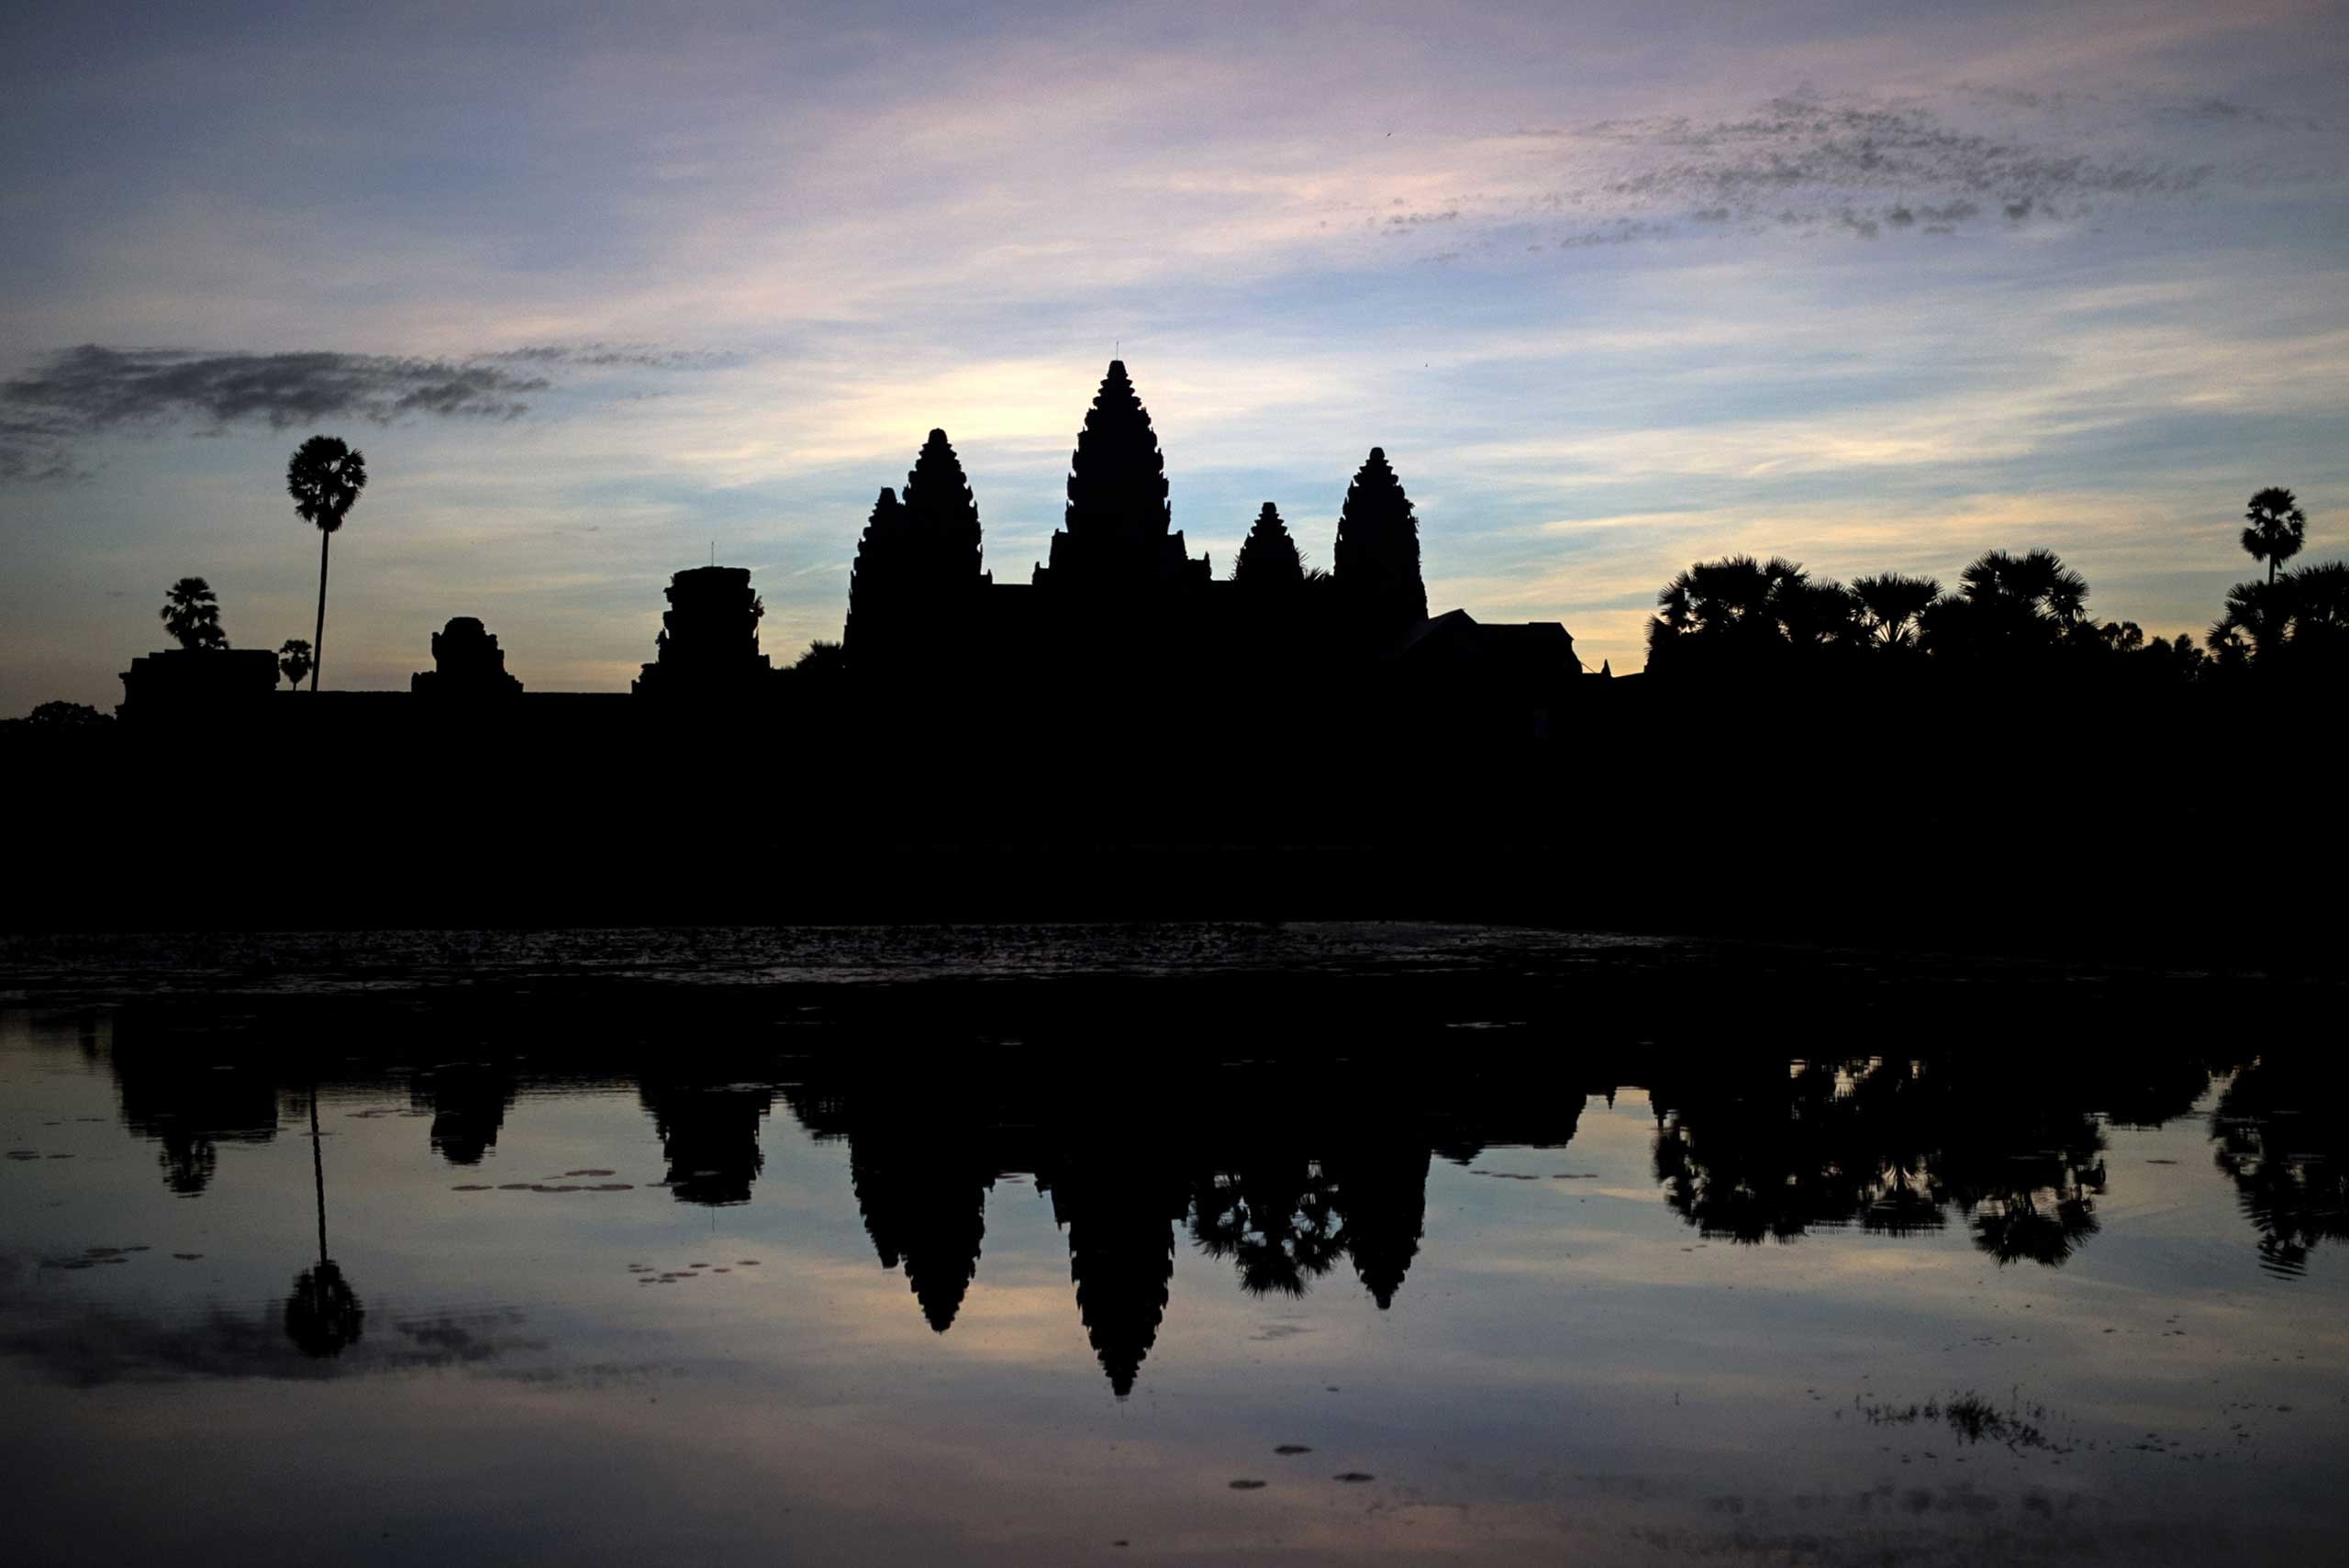 The Angkor Wat temple complex at sunrise in Cambodia's Angkor National Park, Siem Reap province, Nov. 8, 2014.